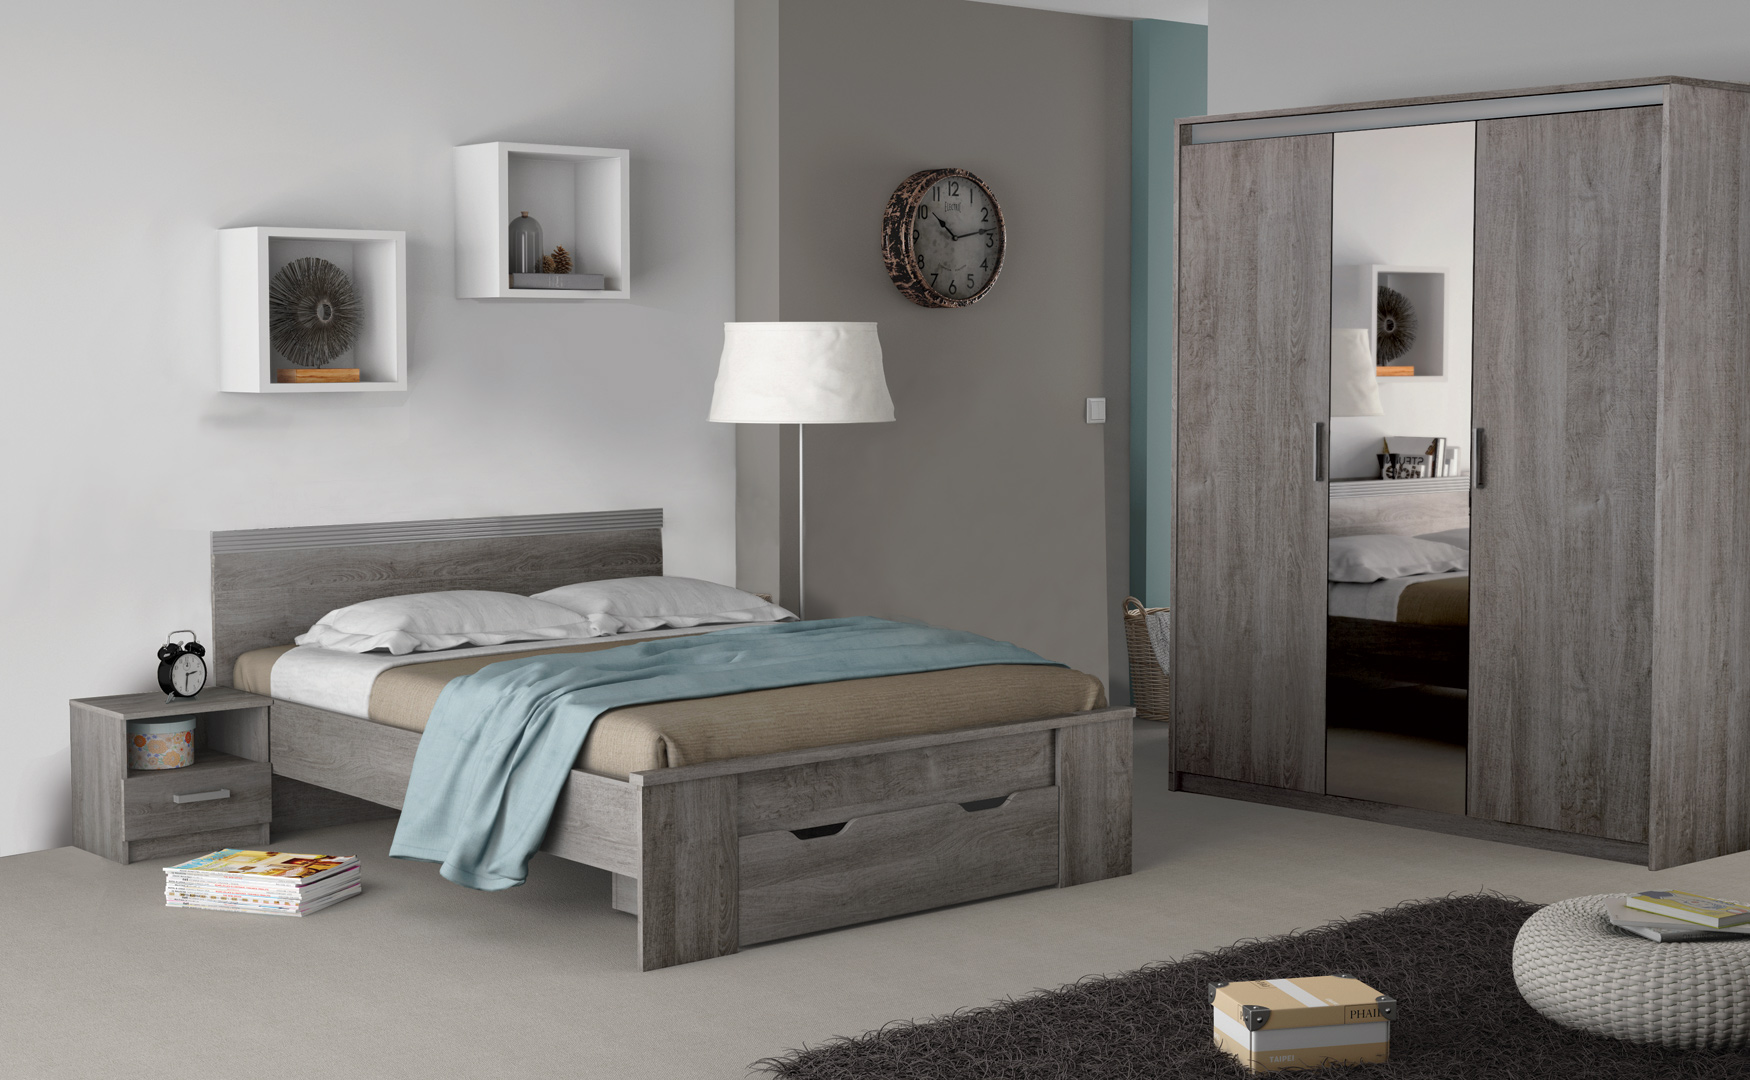 chambre adulte compl te contemporaine ch ne prata sherazade matelpro. Black Bedroom Furniture Sets. Home Design Ideas